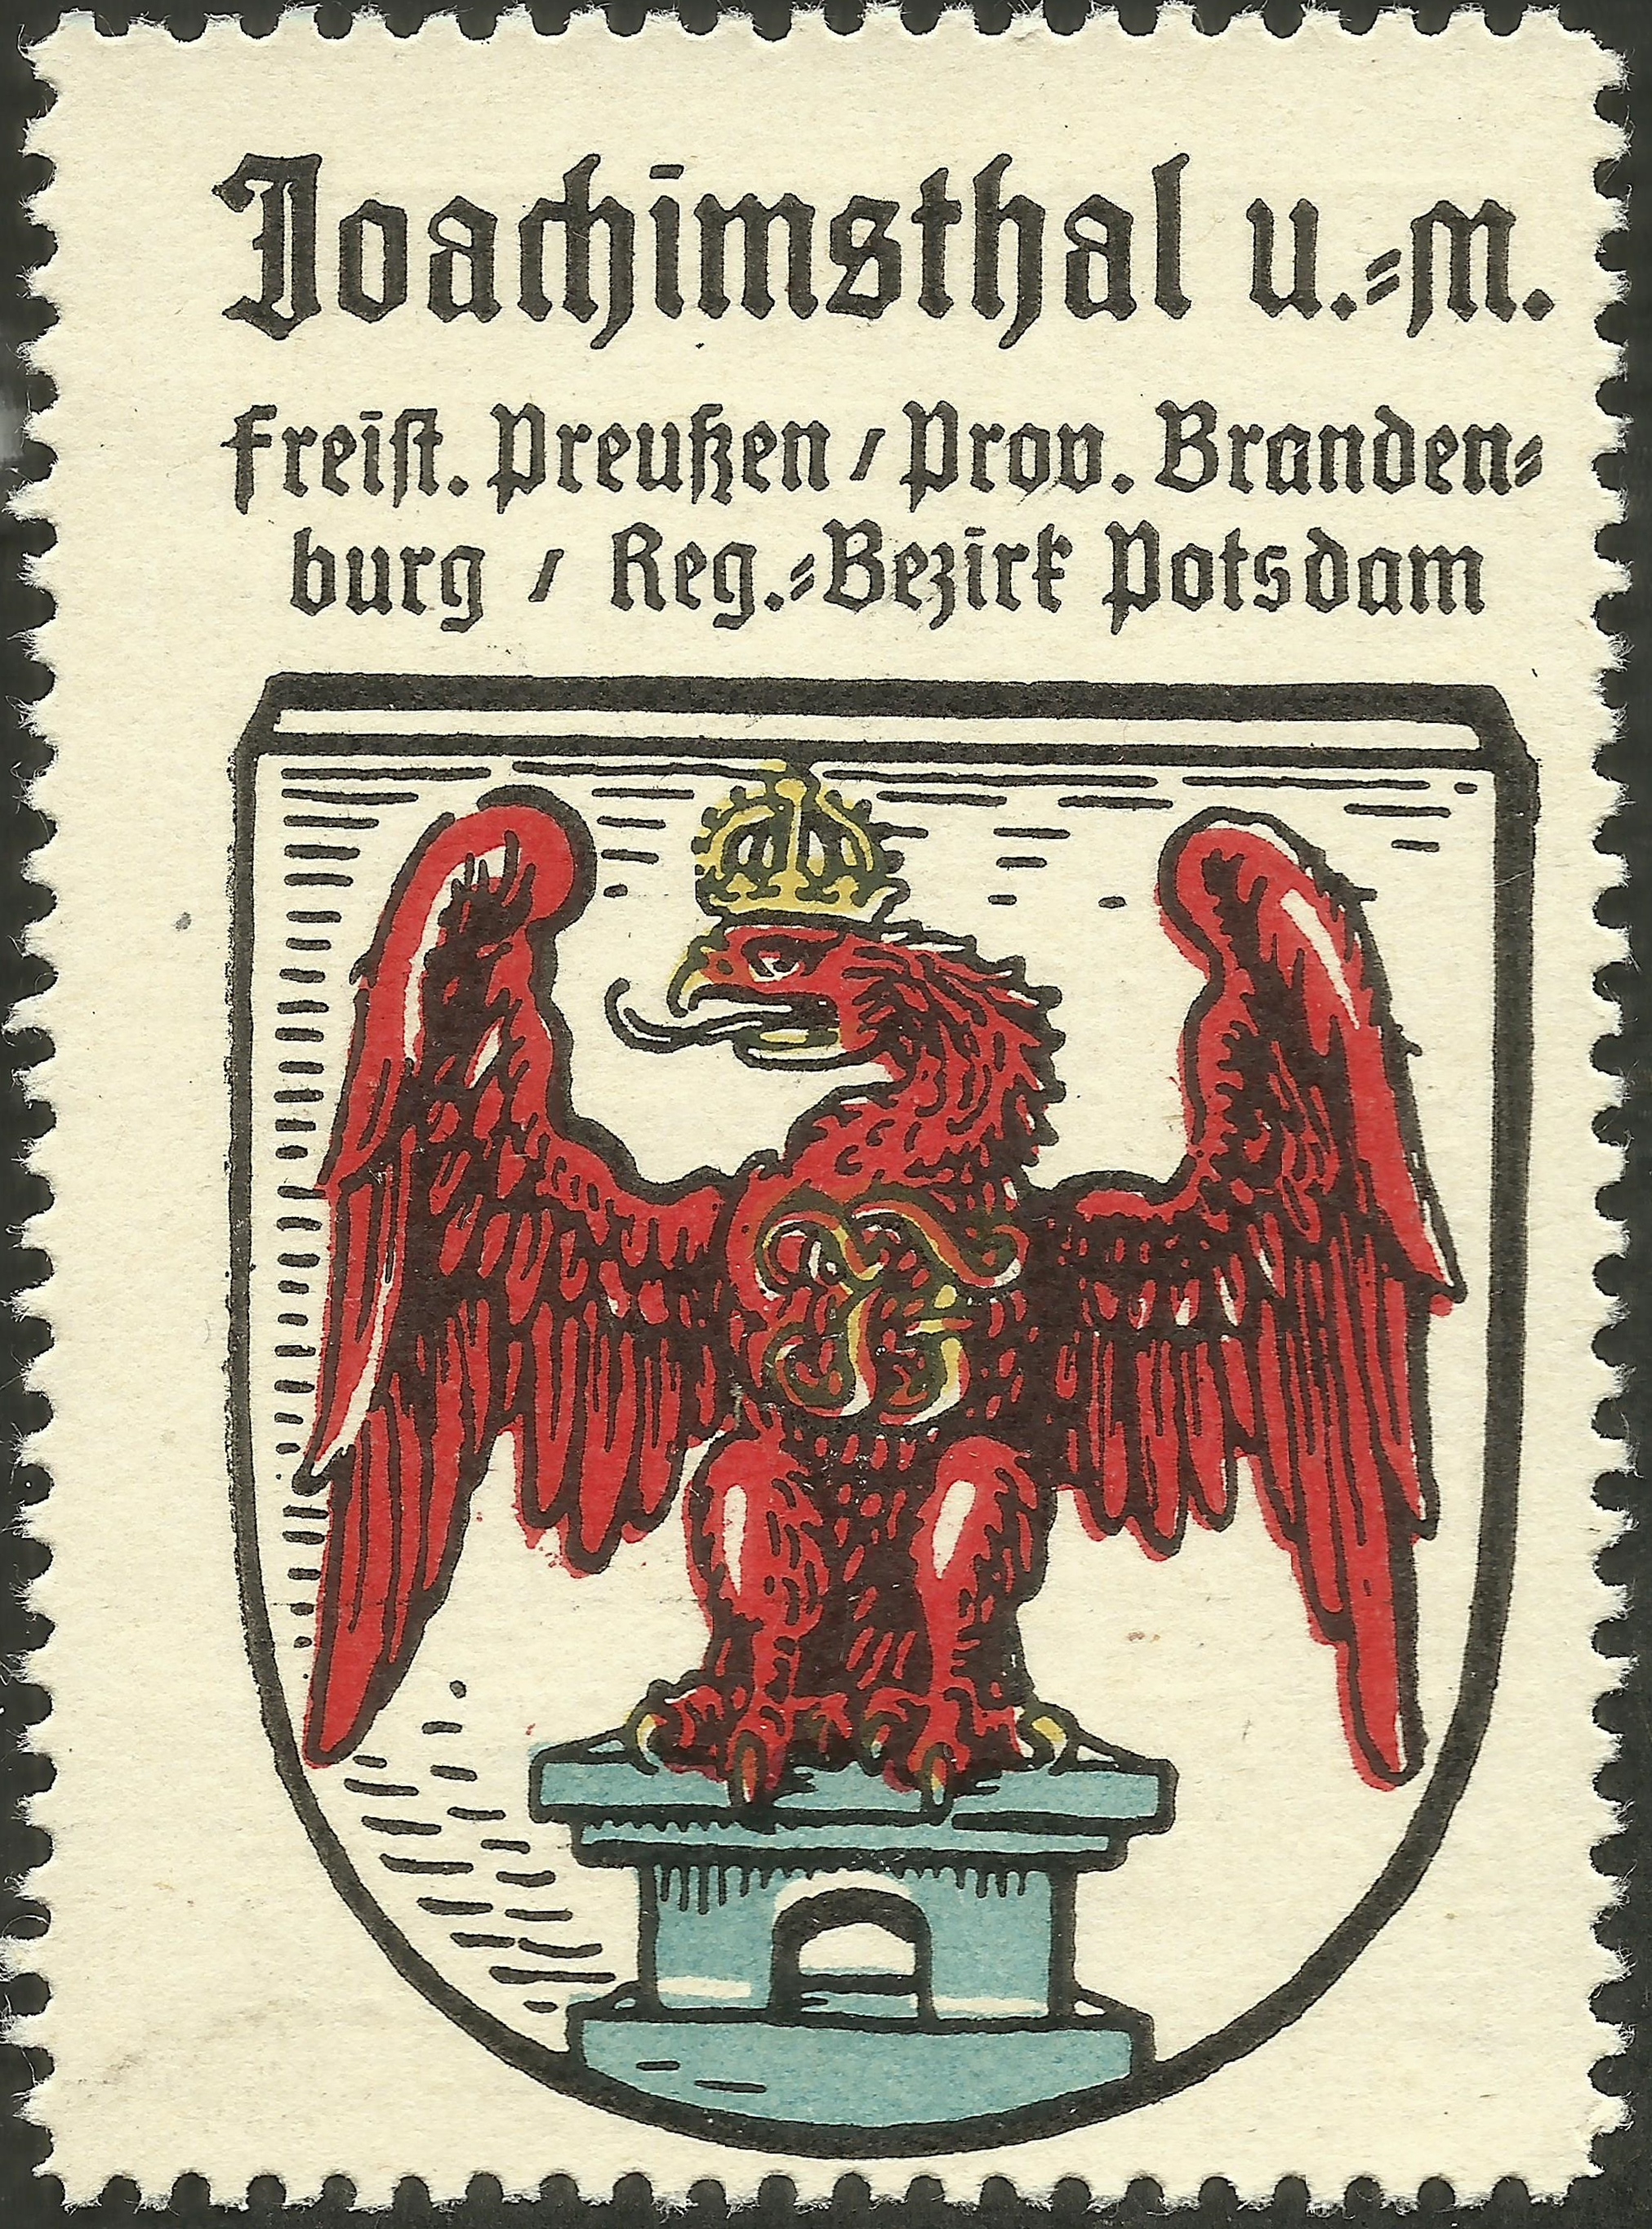 Poster stamp bearing the coat of arms of one of two towns called Joachimsthal then within the German Empire, one near Berlin and the other in the Bohemian Forest and currently known as Jáchymov in the northern Czech Republic. The latter town is best known for its minting of large silver coins called Joachimsthalers (which was the source of the later German thaler and English dollar) and for being the location where Marie Curie discovered the element radium. Today, it is most visited for its spas. This was actually the first poster stamp I ever owned, starting a lifelong collection of items with a form of my surname inscribed on them.